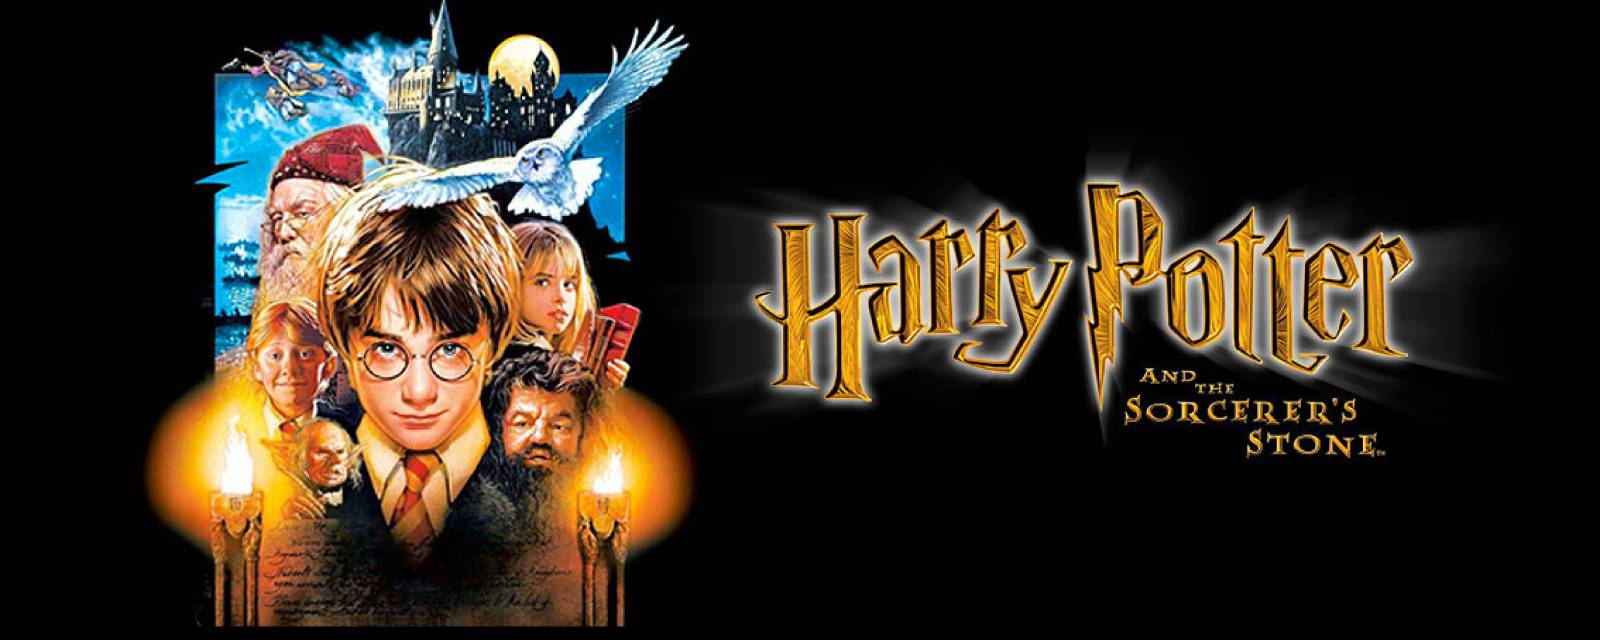 Harry Potter & the Scorcerer's Stone